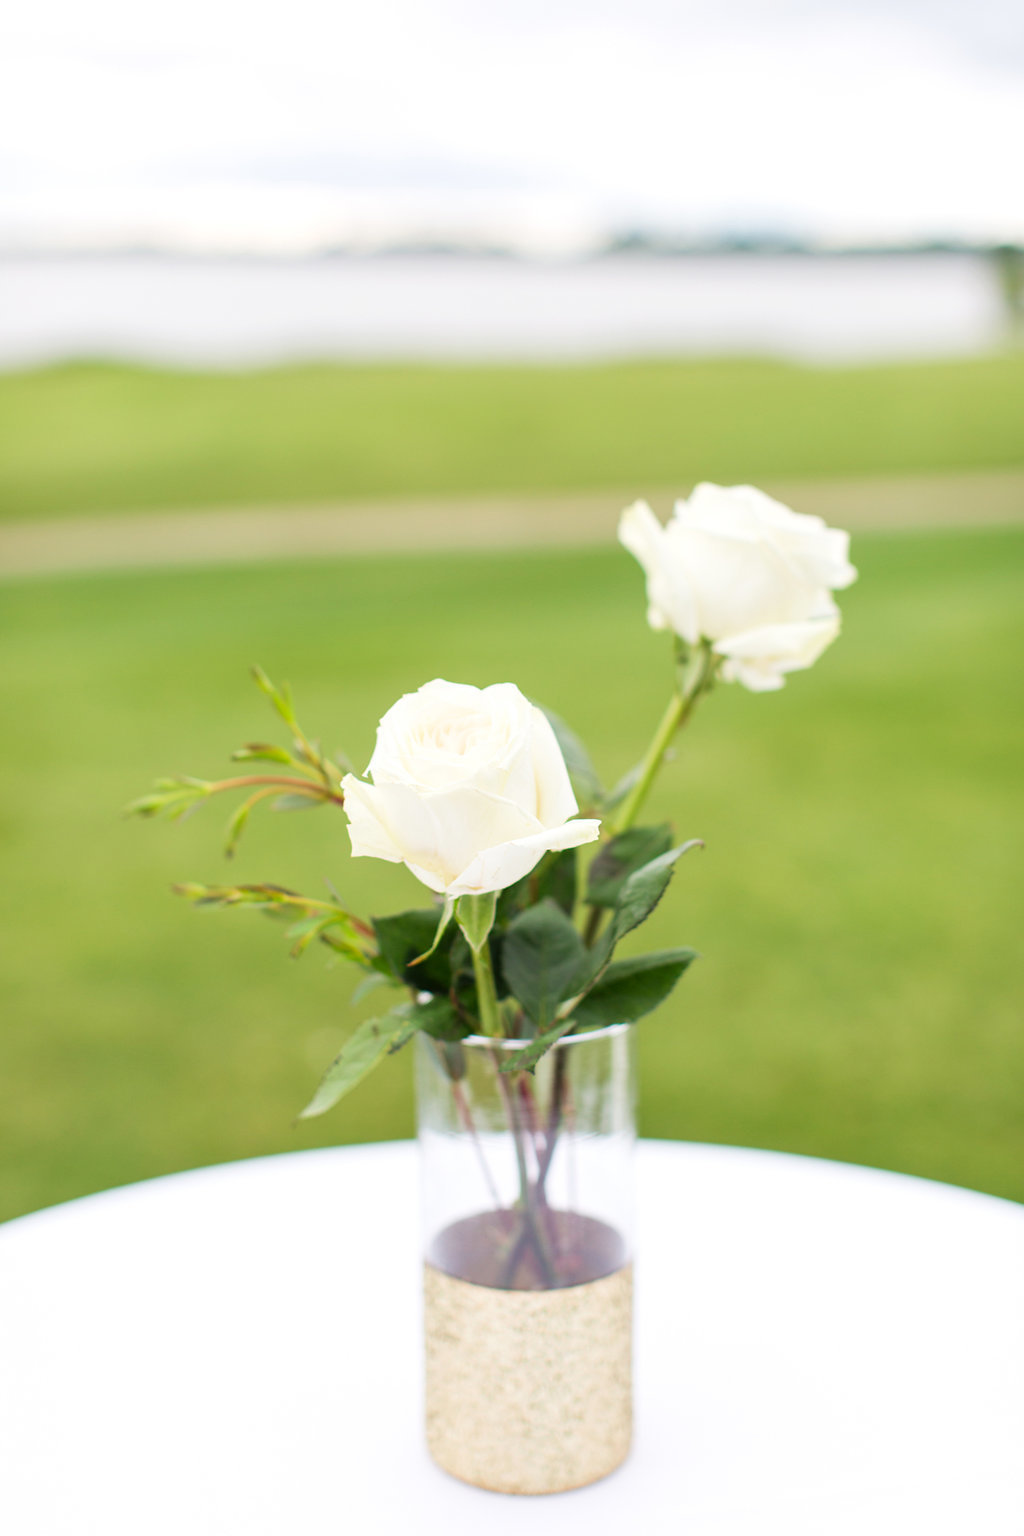 Williamsburg-va-two-rivers-country-club-wedding-photos-064